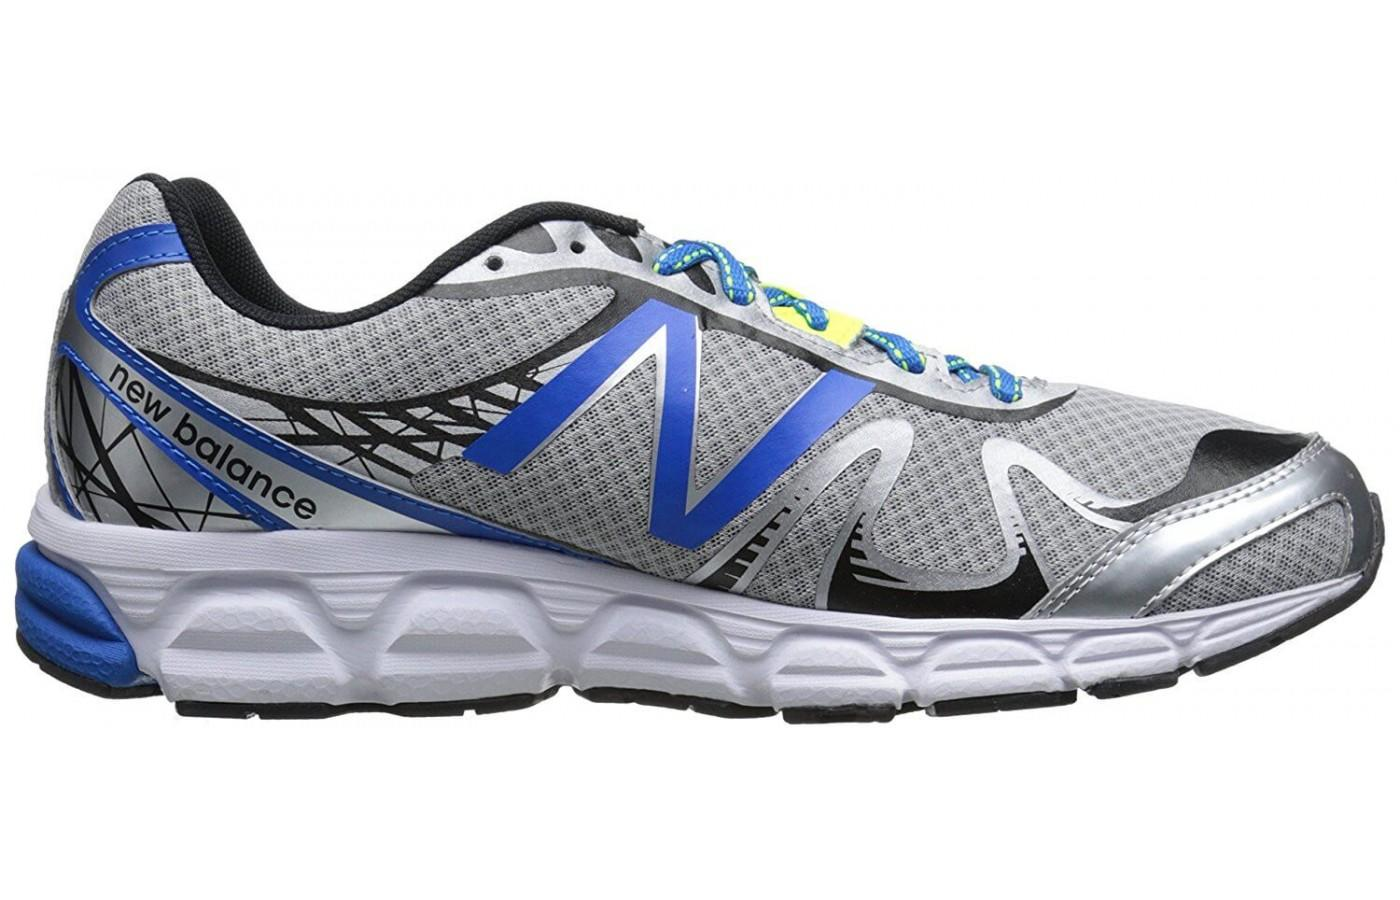 c40e101bf00 ... the New Balance 780 v5 provides neutral support for daily running ...